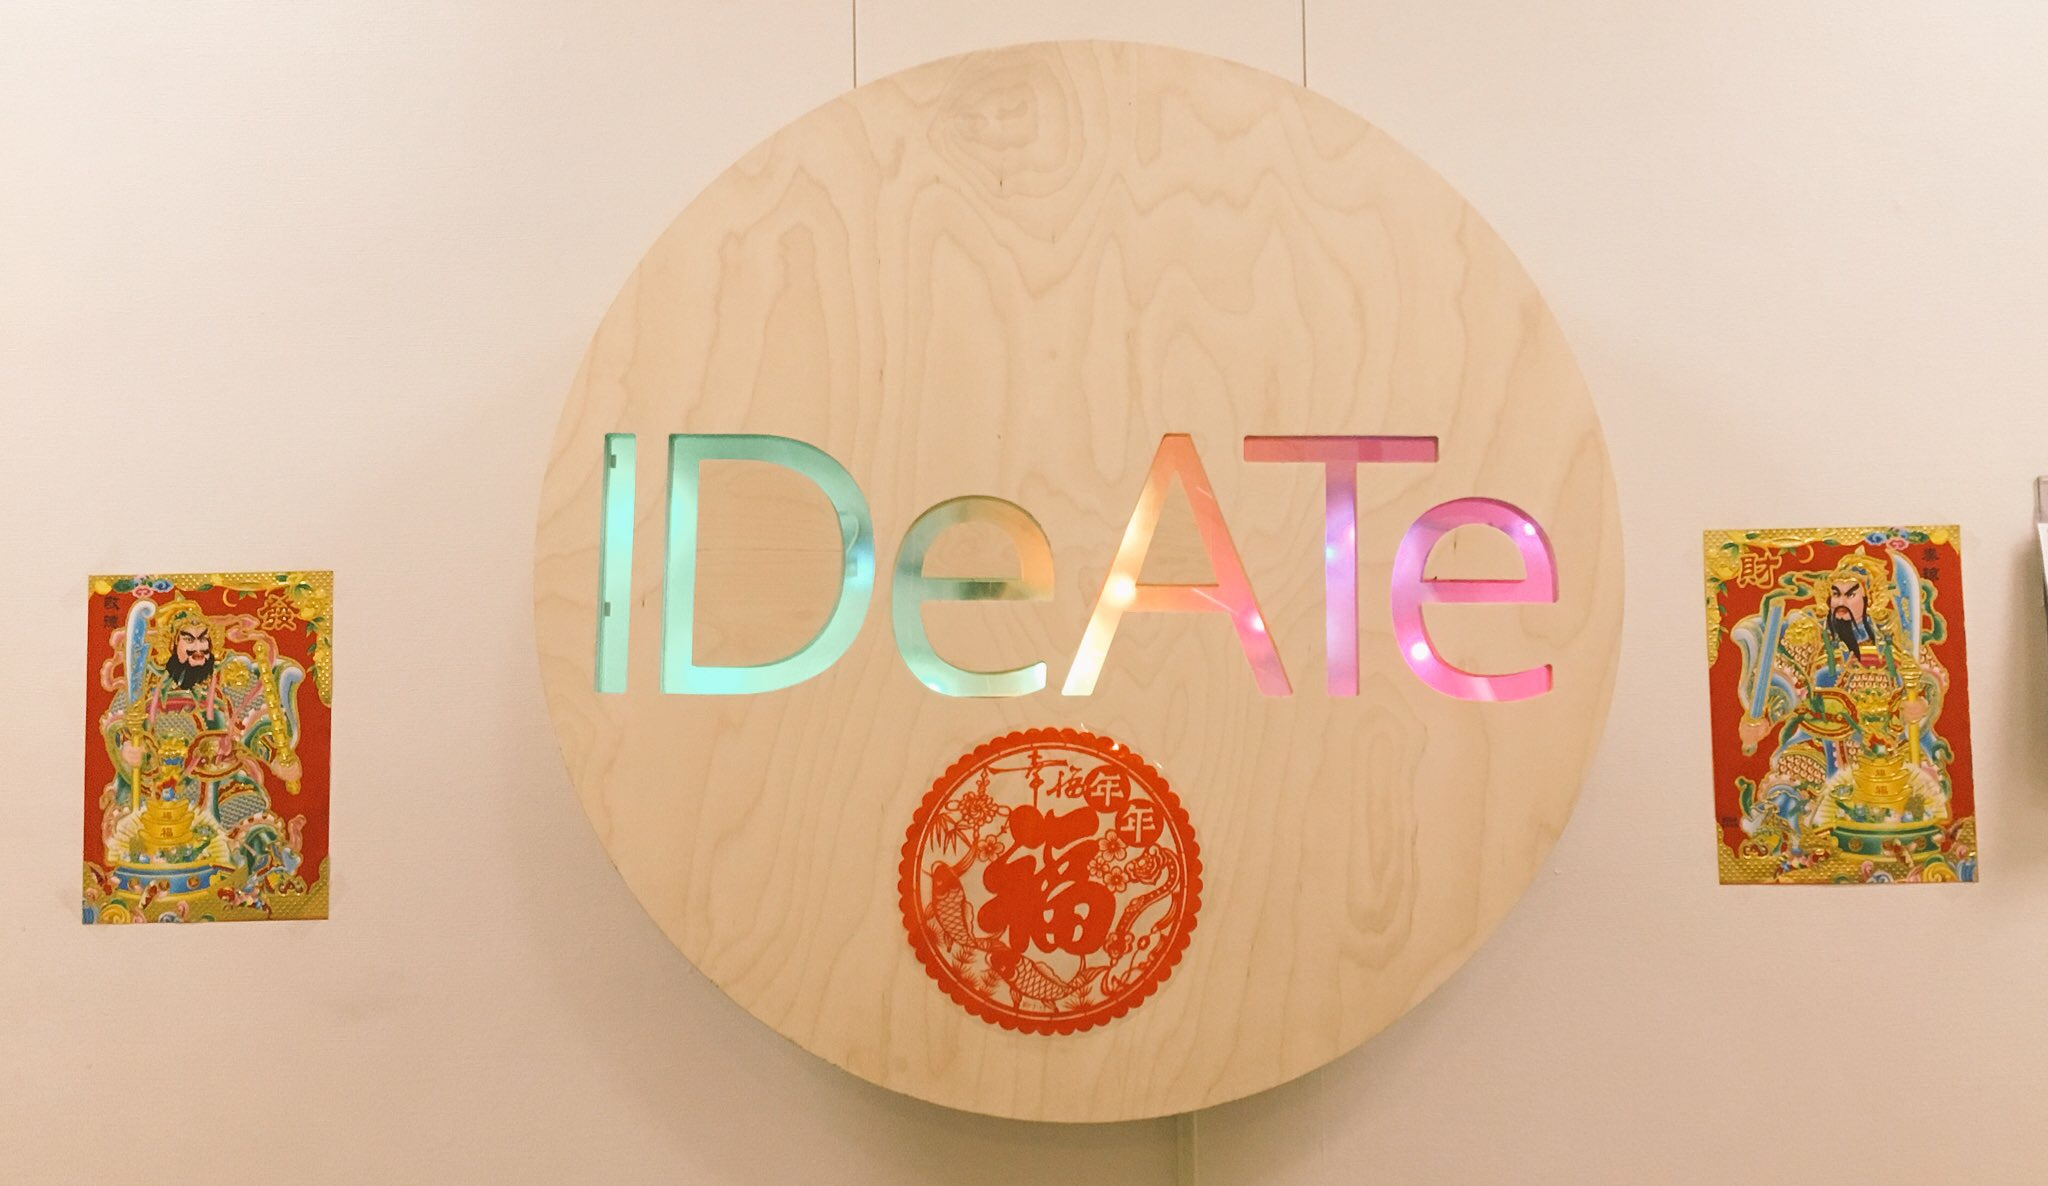 Chinese New Year Decorations on the IDeATe sign